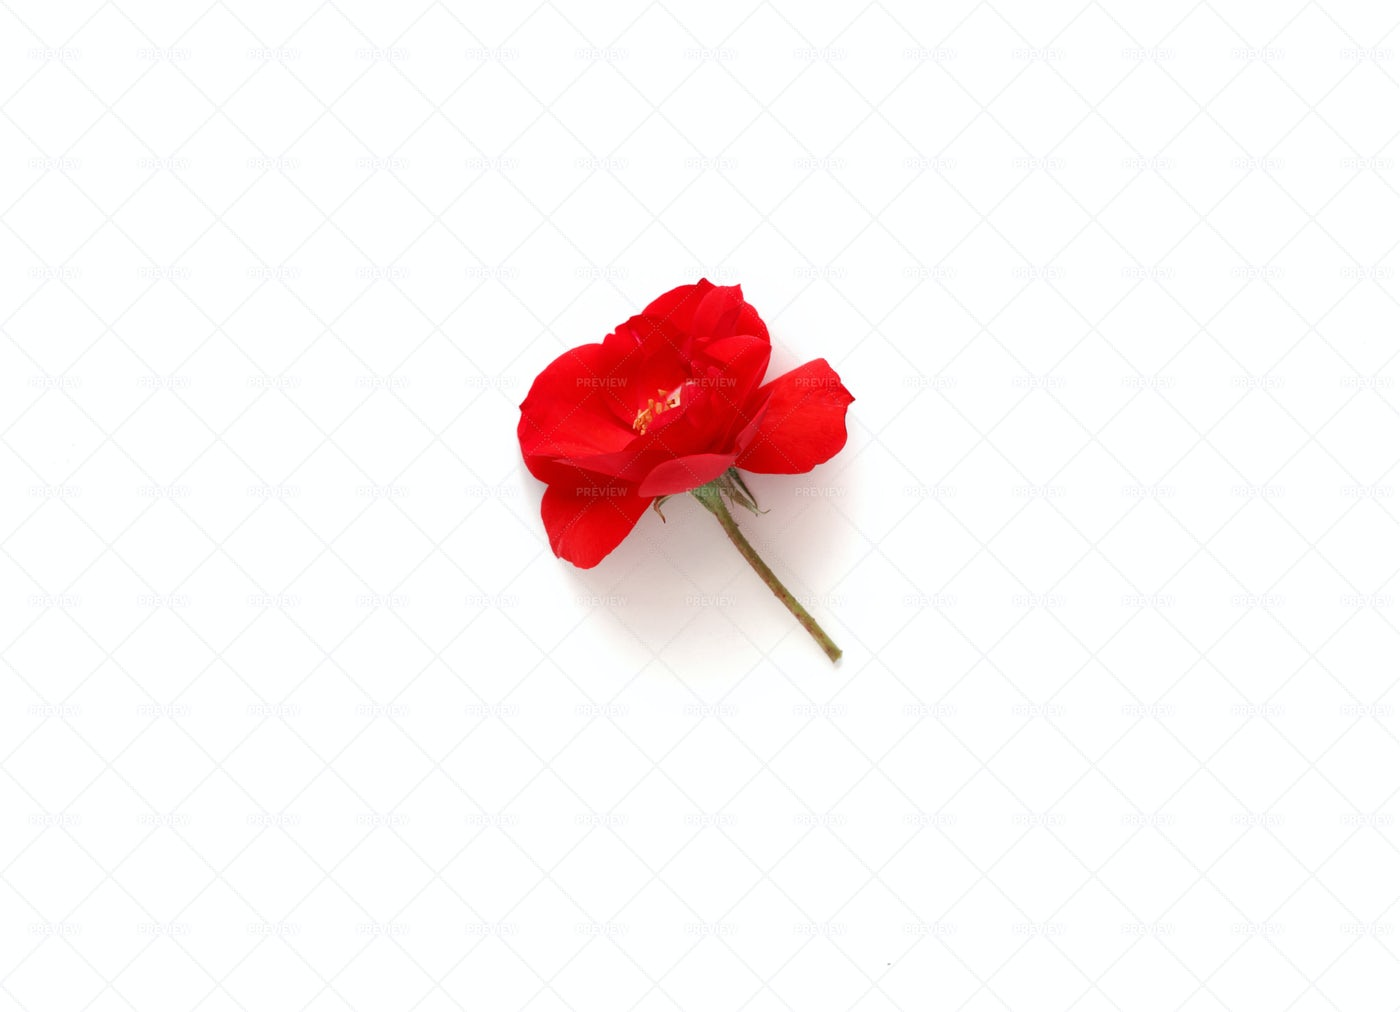 Red Rose On White: Stock Photos